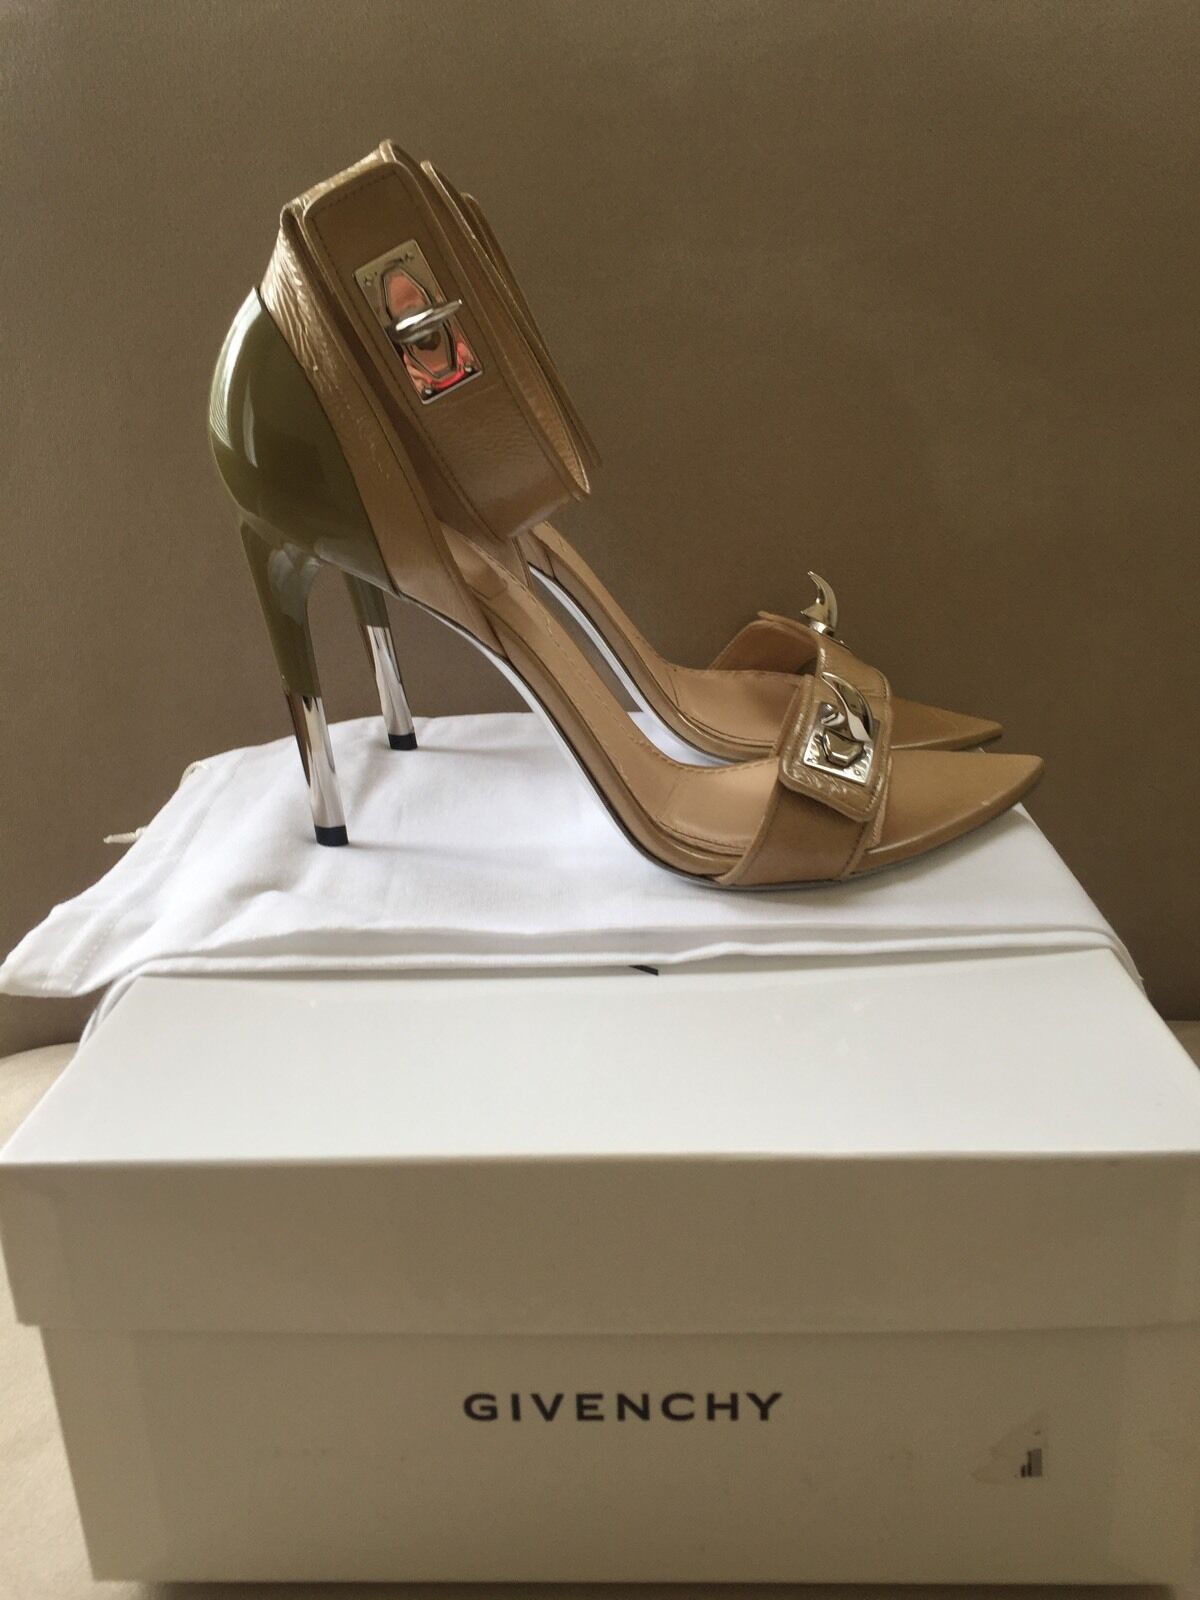 GIVENCHY GIVENCHY GIVENCHY SHARK TOOTH LOCK SANDAL PATENT BEIGE Silber HDW 39, US9 1f9398